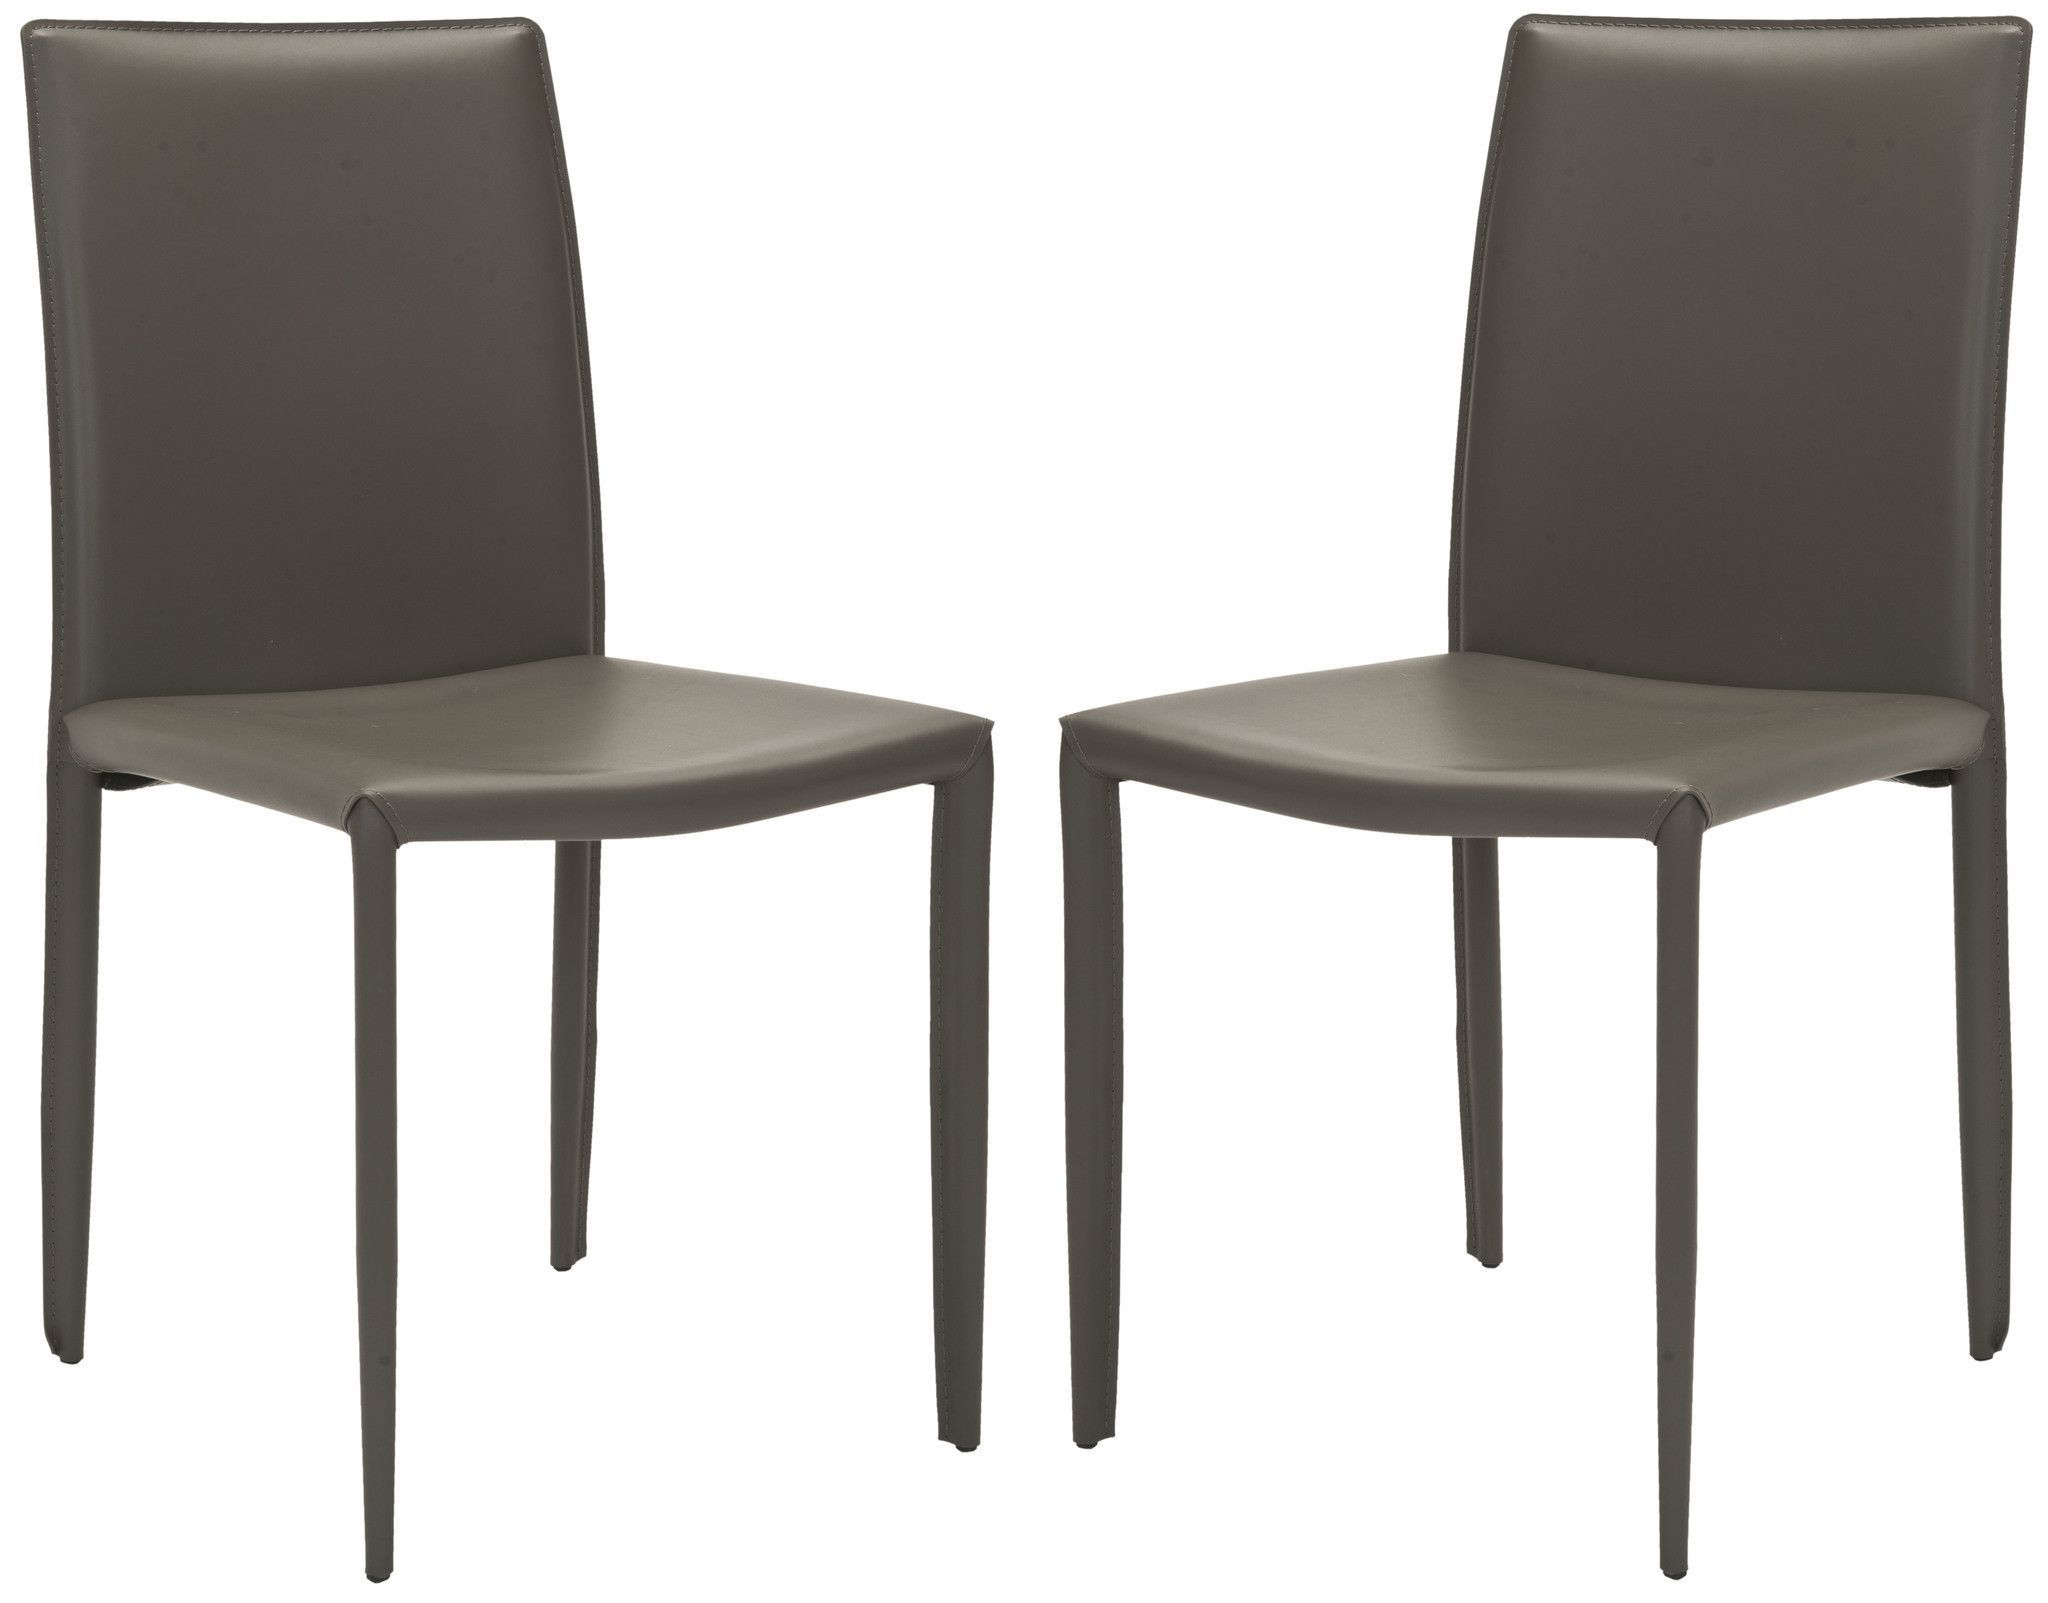 Safavieh Karna Dining Chair Dining chairs Metal types and Products